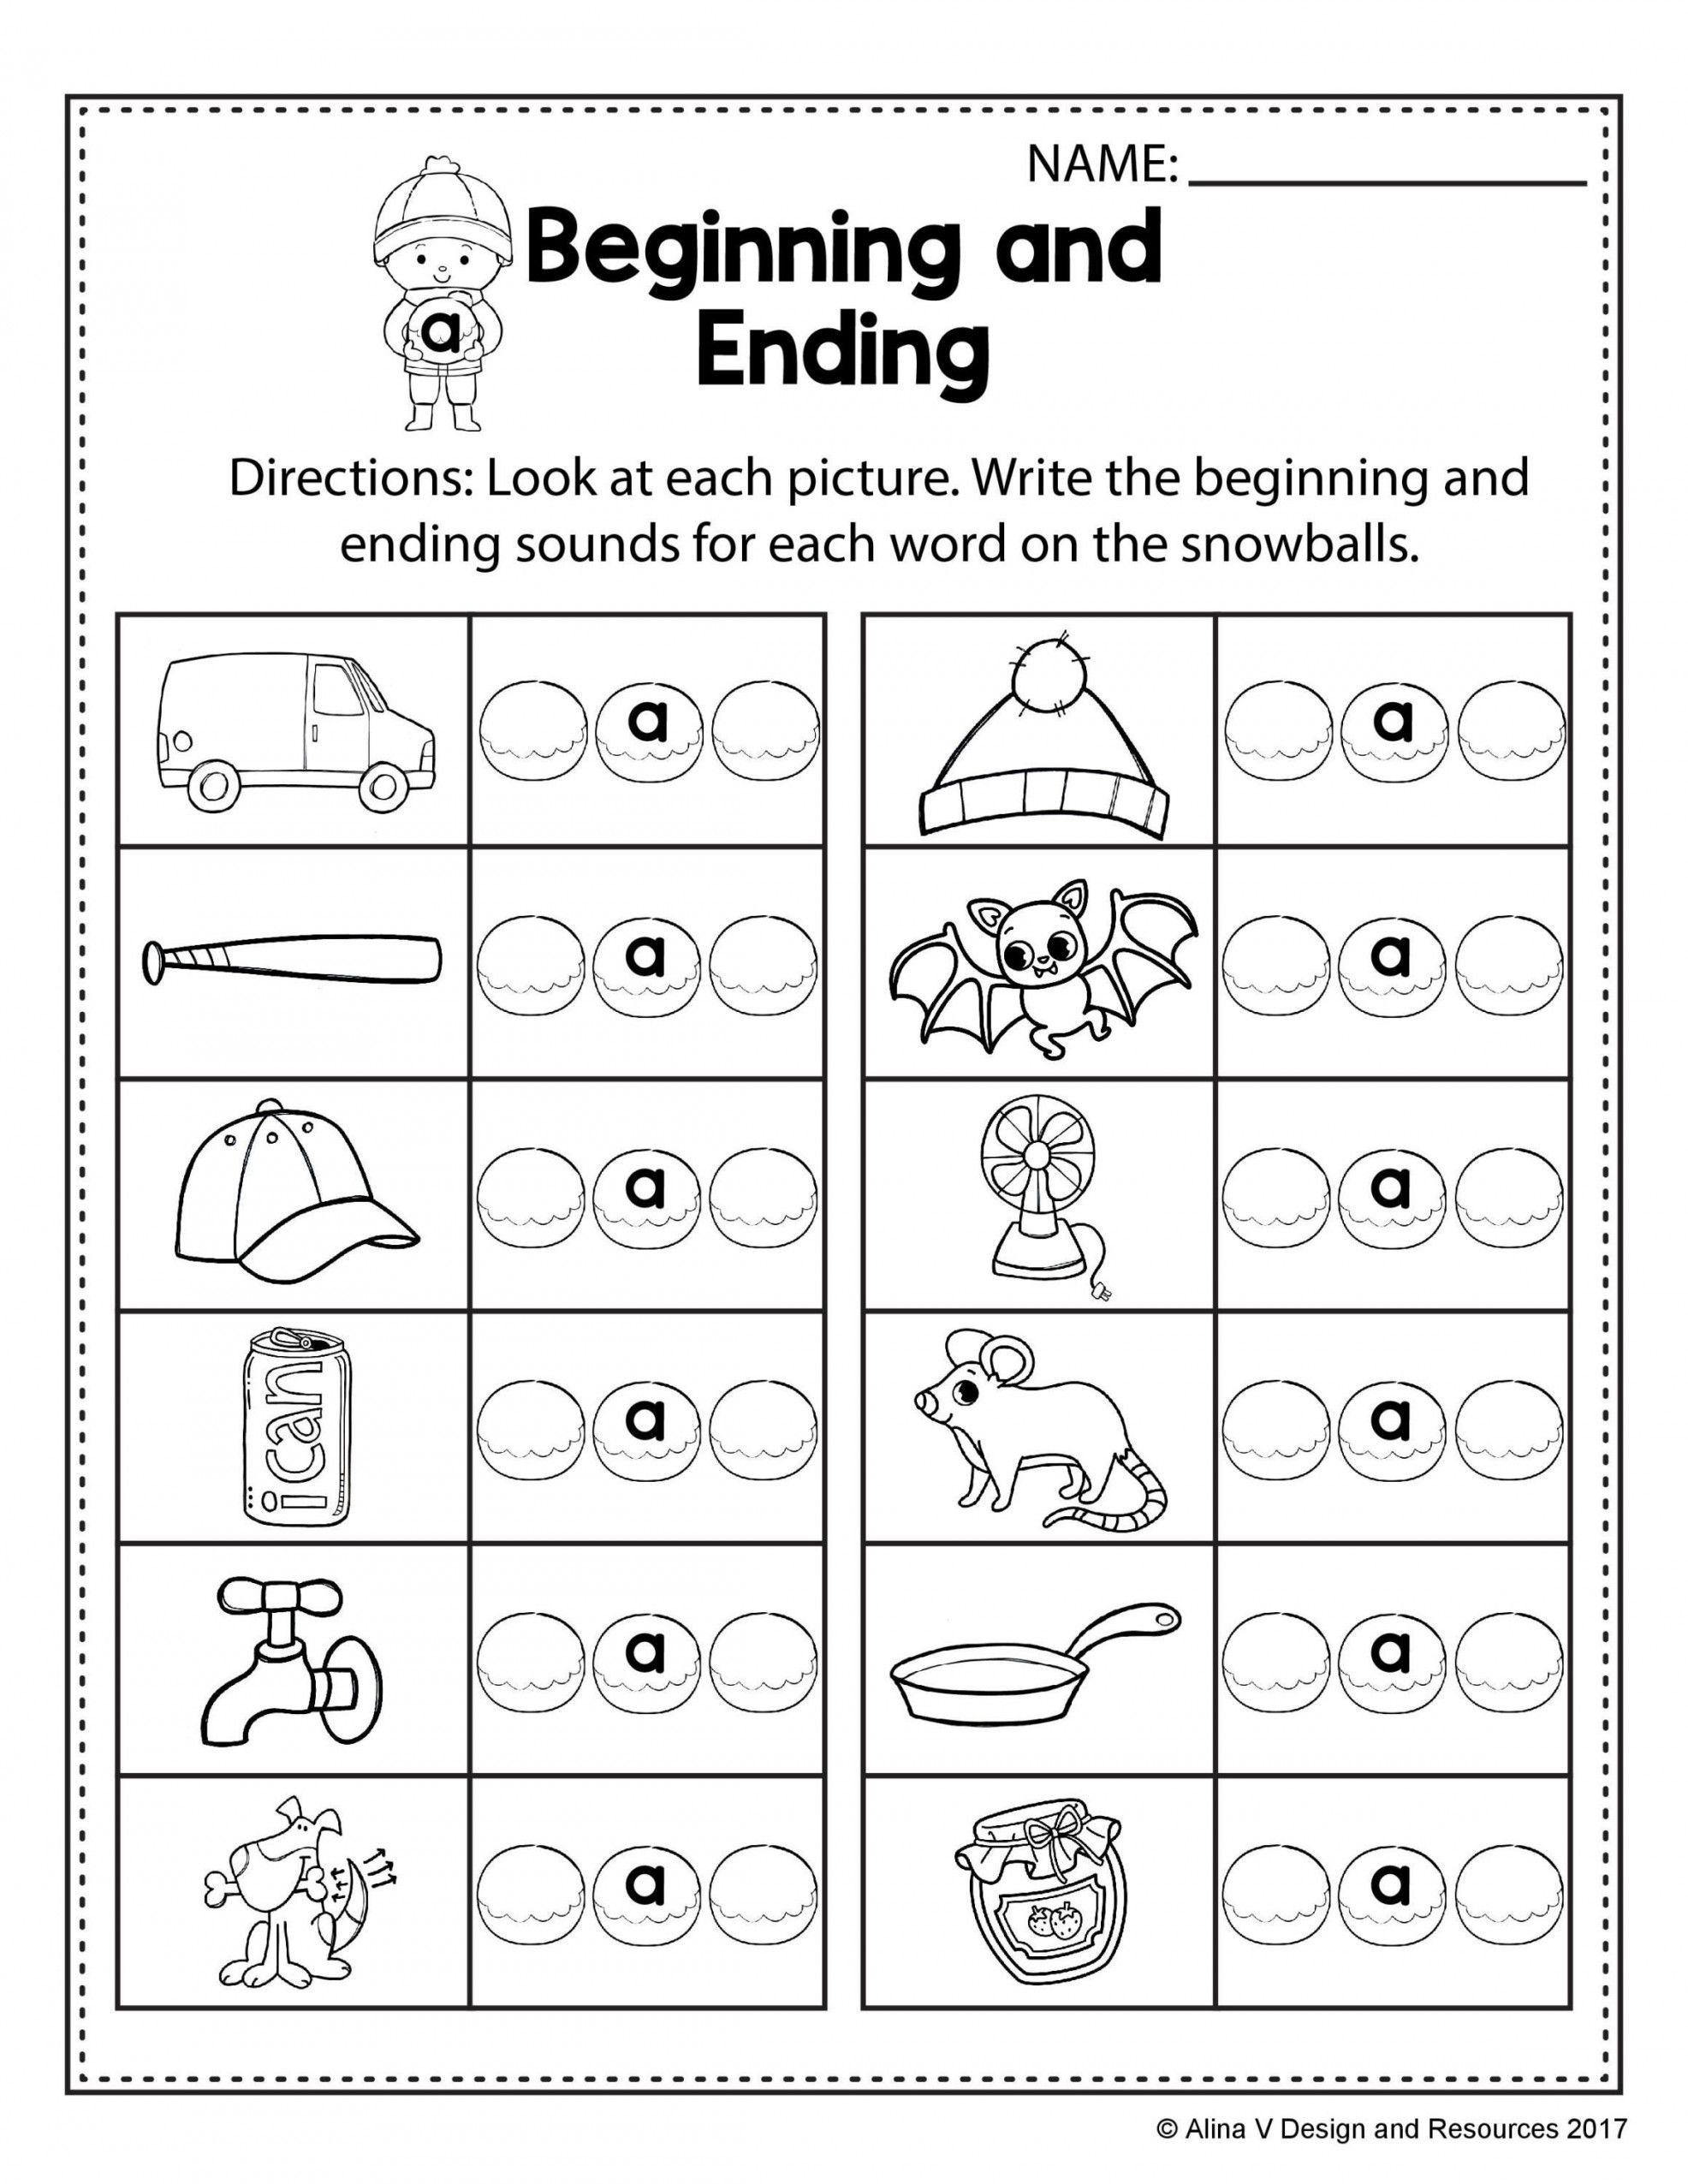 Cvc Words Worksheets Free Printable | Lostranquillos - Cvc Words | Cvc Words Worksheets Free Printable